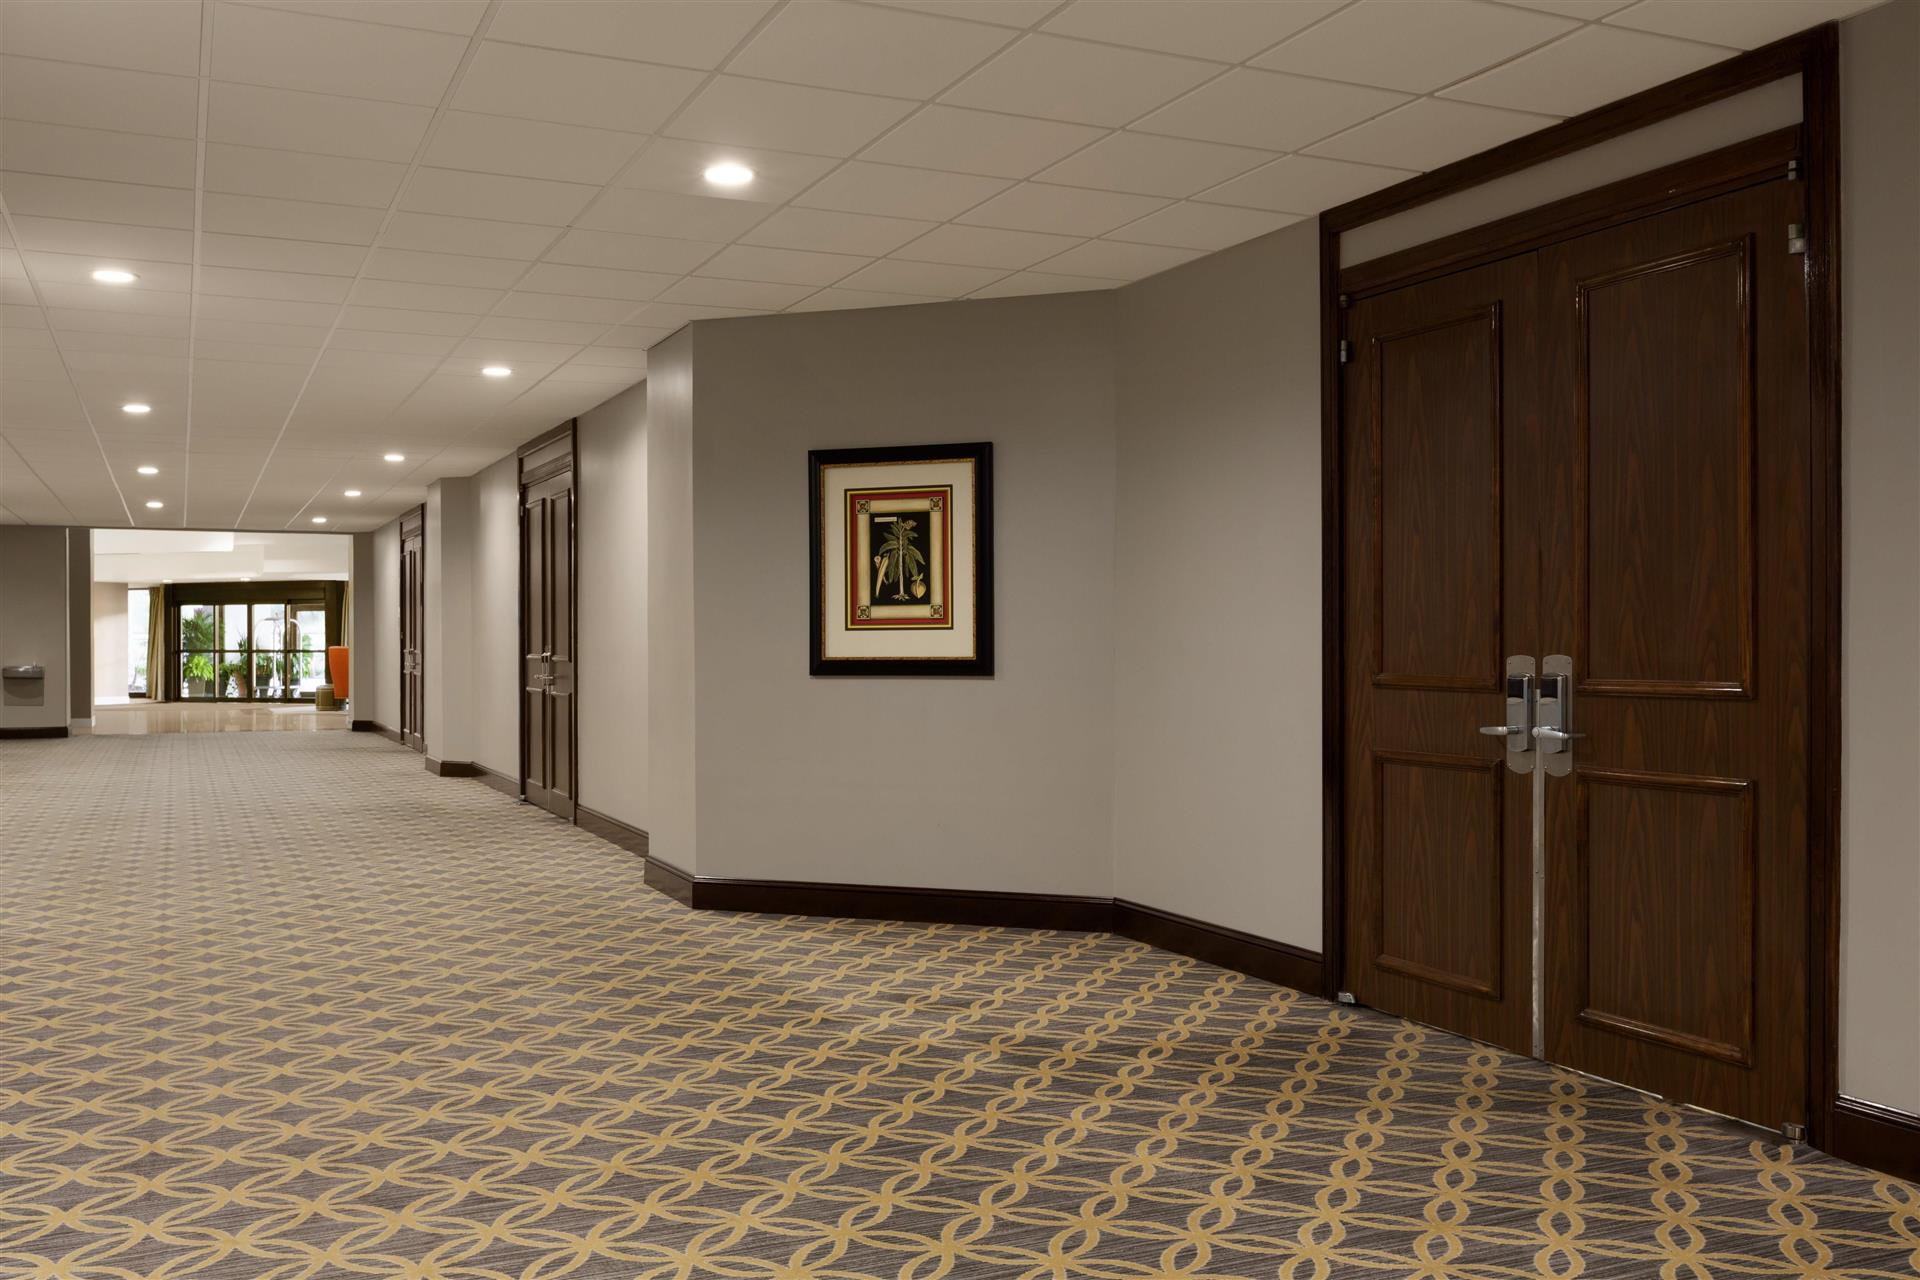 Meetings and Events at Embassy Suites by Hilton Boca Raton, Boca ...